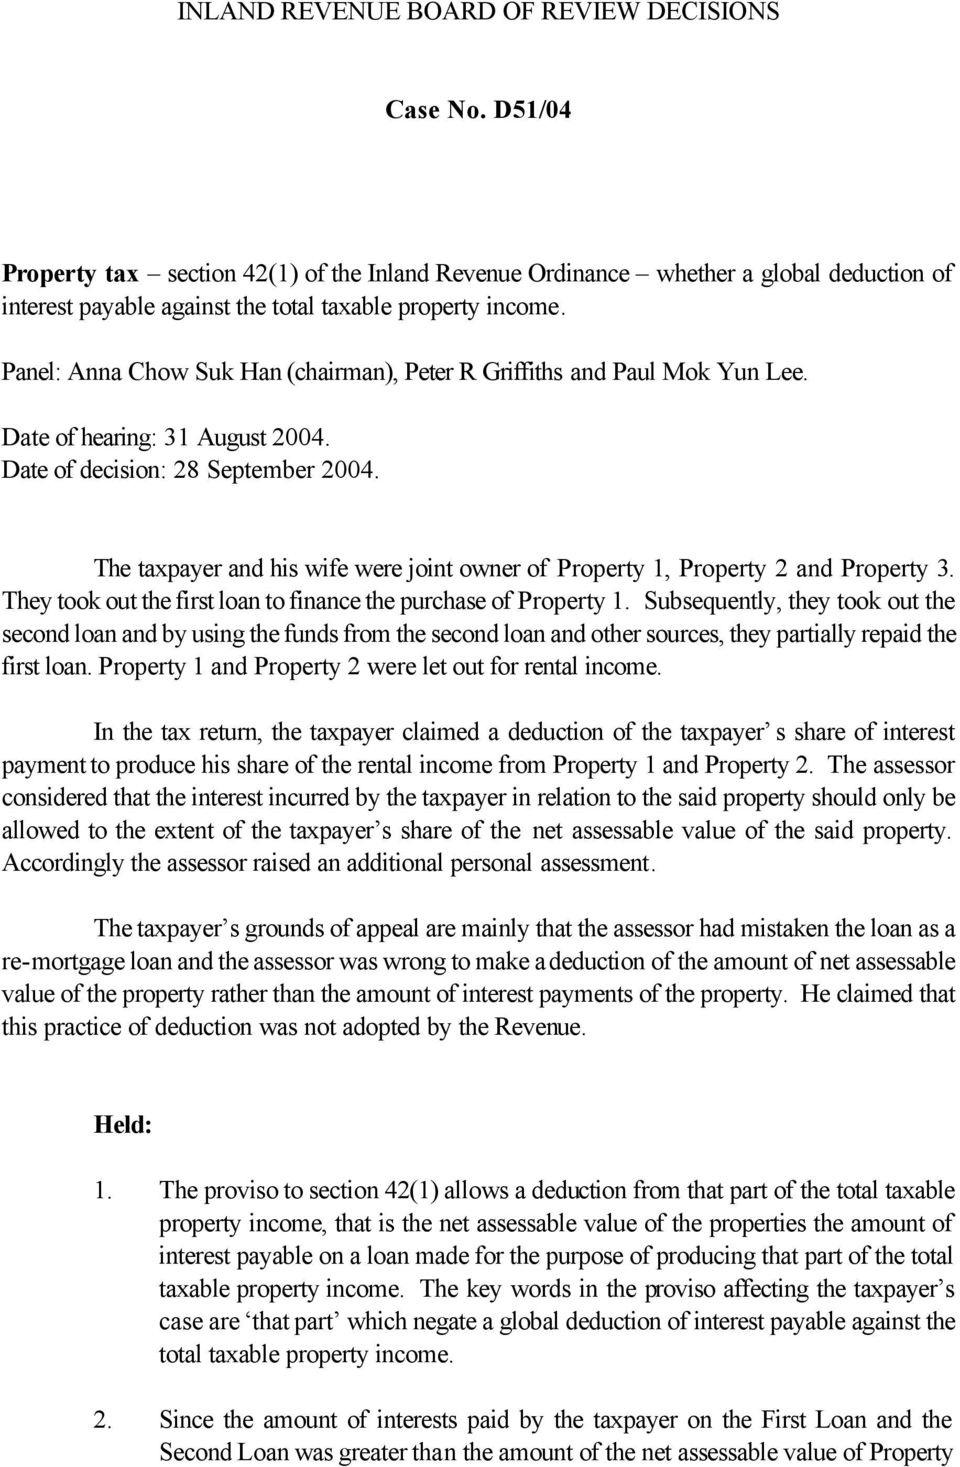 The taxpayer and his wife were joint owner of Property 1, Property 2 and Property 3. They took out the first loan to finance the purchase of Property 1.